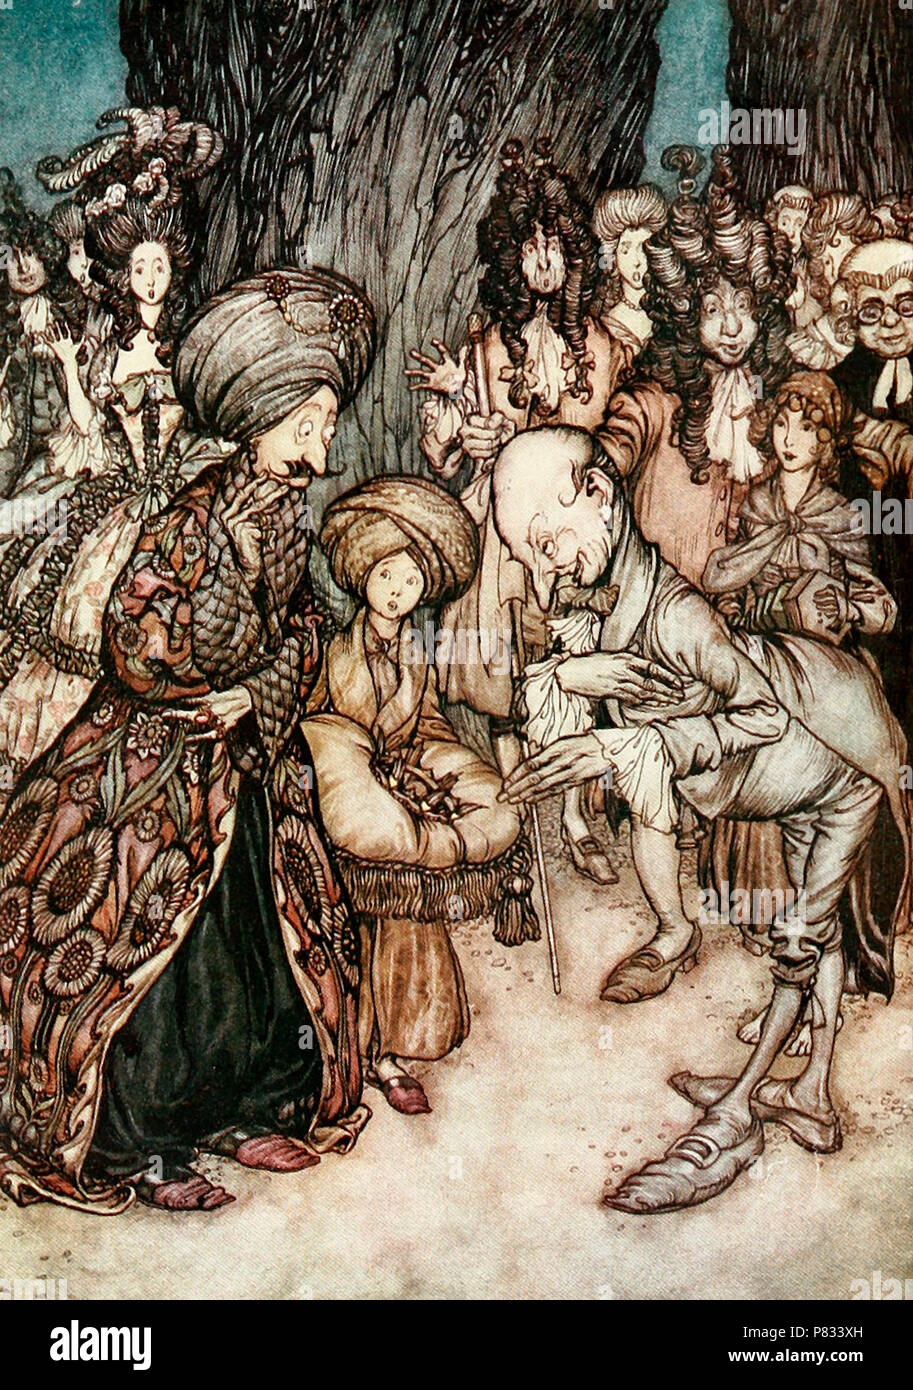 'My Lord Duke,' said the physician elatedly, 'I have the honor to inform your excellency that your grace is in love' - Scene from Peter Pan - Stock Image